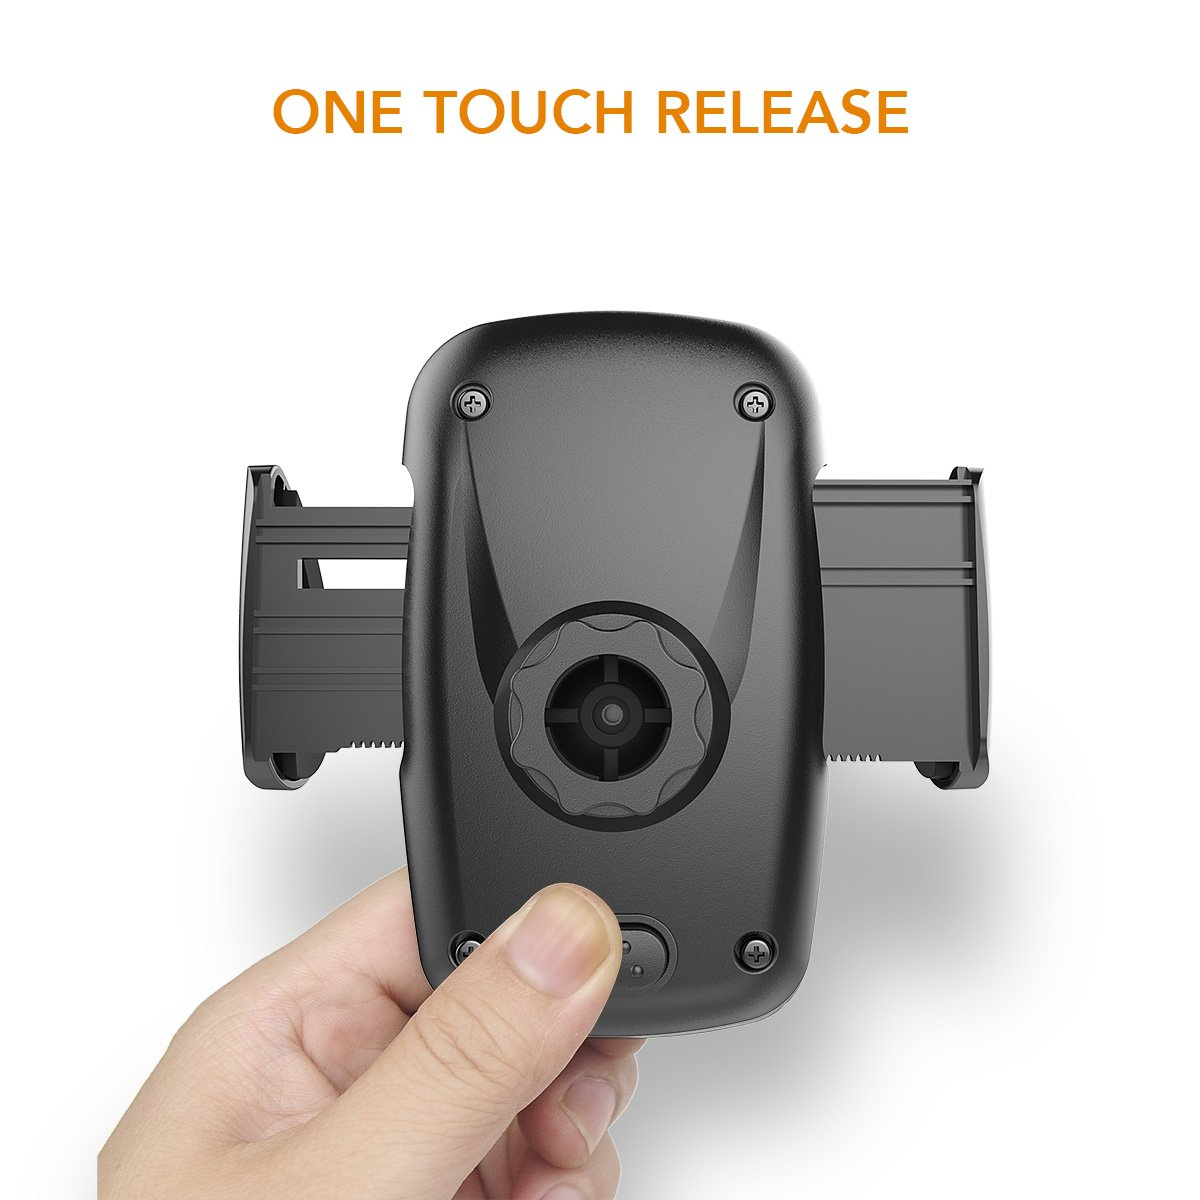 CD Slot Car Mount Cuxwill Universal Phone holder One-Touch Release Cradle for Smartphones from 3.5-6 inch Shenzhenshi Kaisiweikeji Youxiangongsi CW-CH005